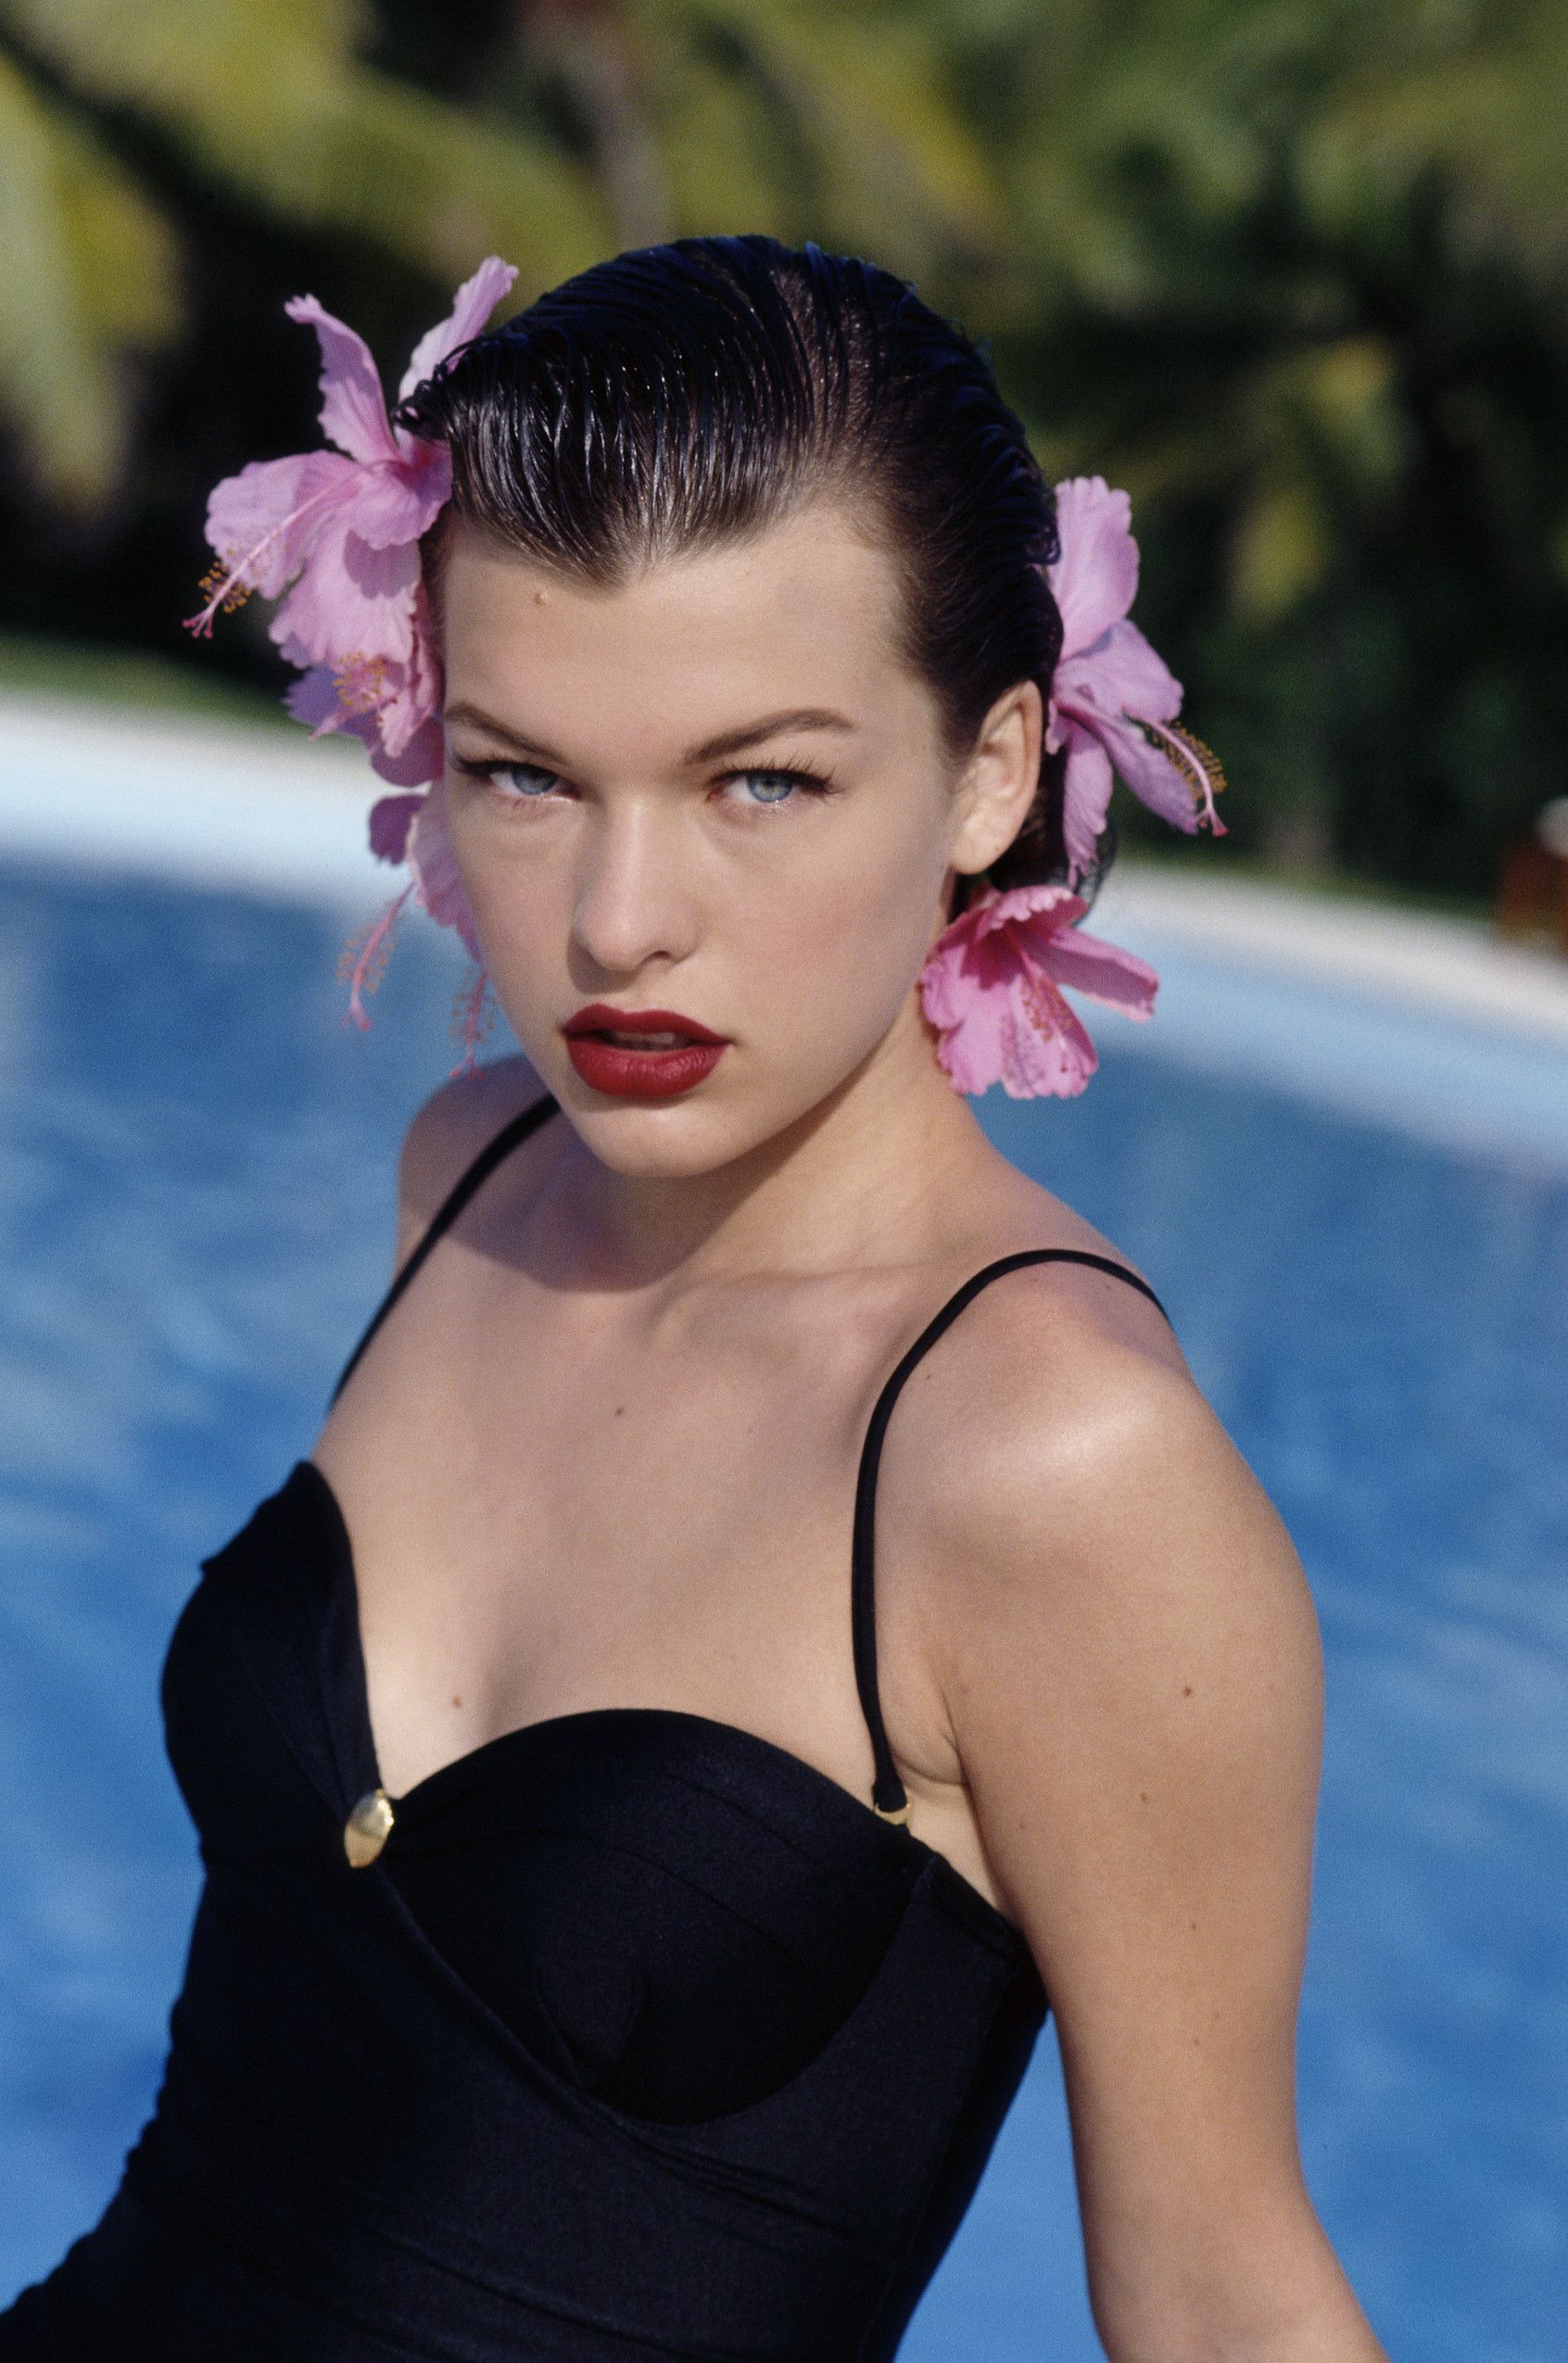 milla jovovich moviesmilla jovovich film, milla jovovich young, milla jovovich wiki, milla jovovich movies, milla jovovich interview, milla jovovich resident evil, milla jovovich purple fashion, milla jovovich facebook, milla jovovich husband, milla jovovich imdb, milla jovovich vogue, milla jovovich 1997, milla jovovich рост, milla jovovich фильмы, milla jovovich russian, milla jovovich – my pass, milla jovovich site, milla jovovich songs, milla jovovich биография, milla jovovich wallpaper hd